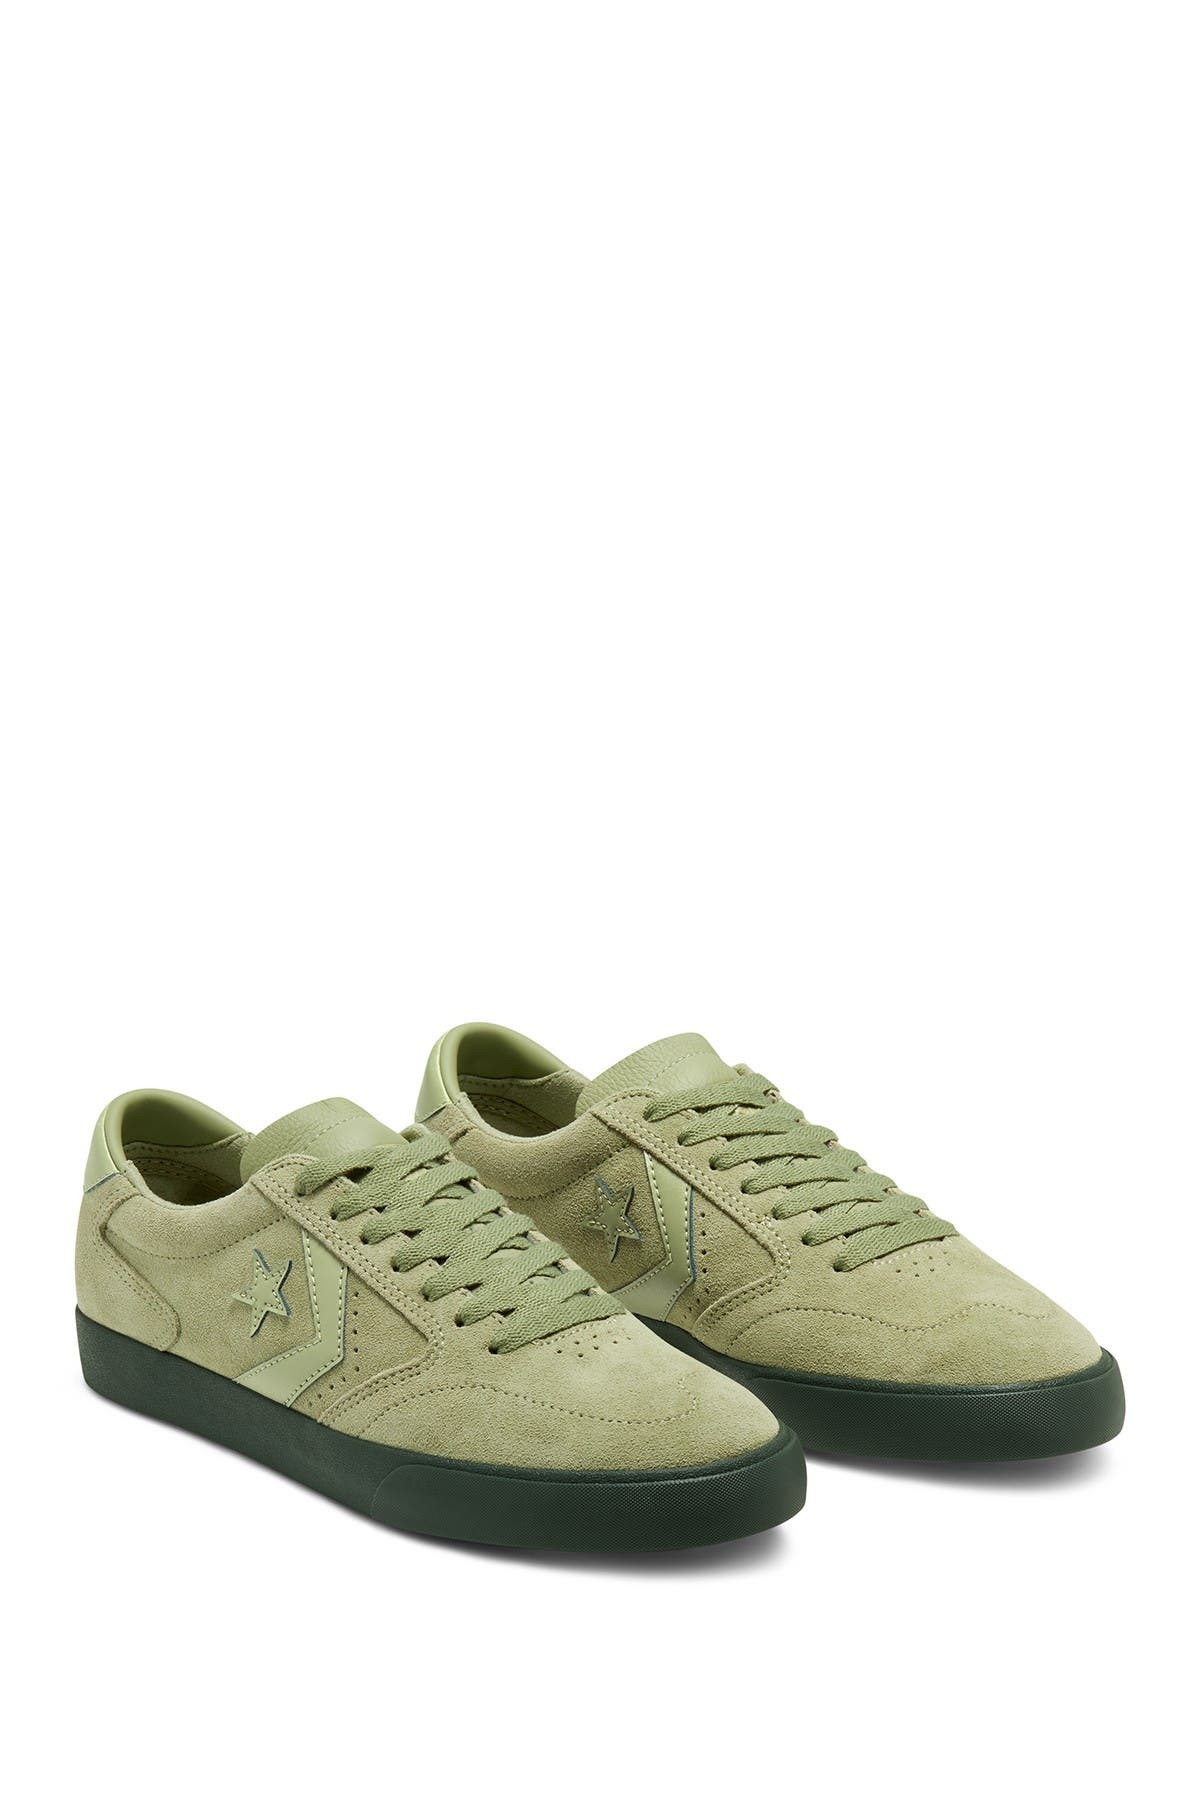 Checkpoint Pro Oxford Street Sneaker